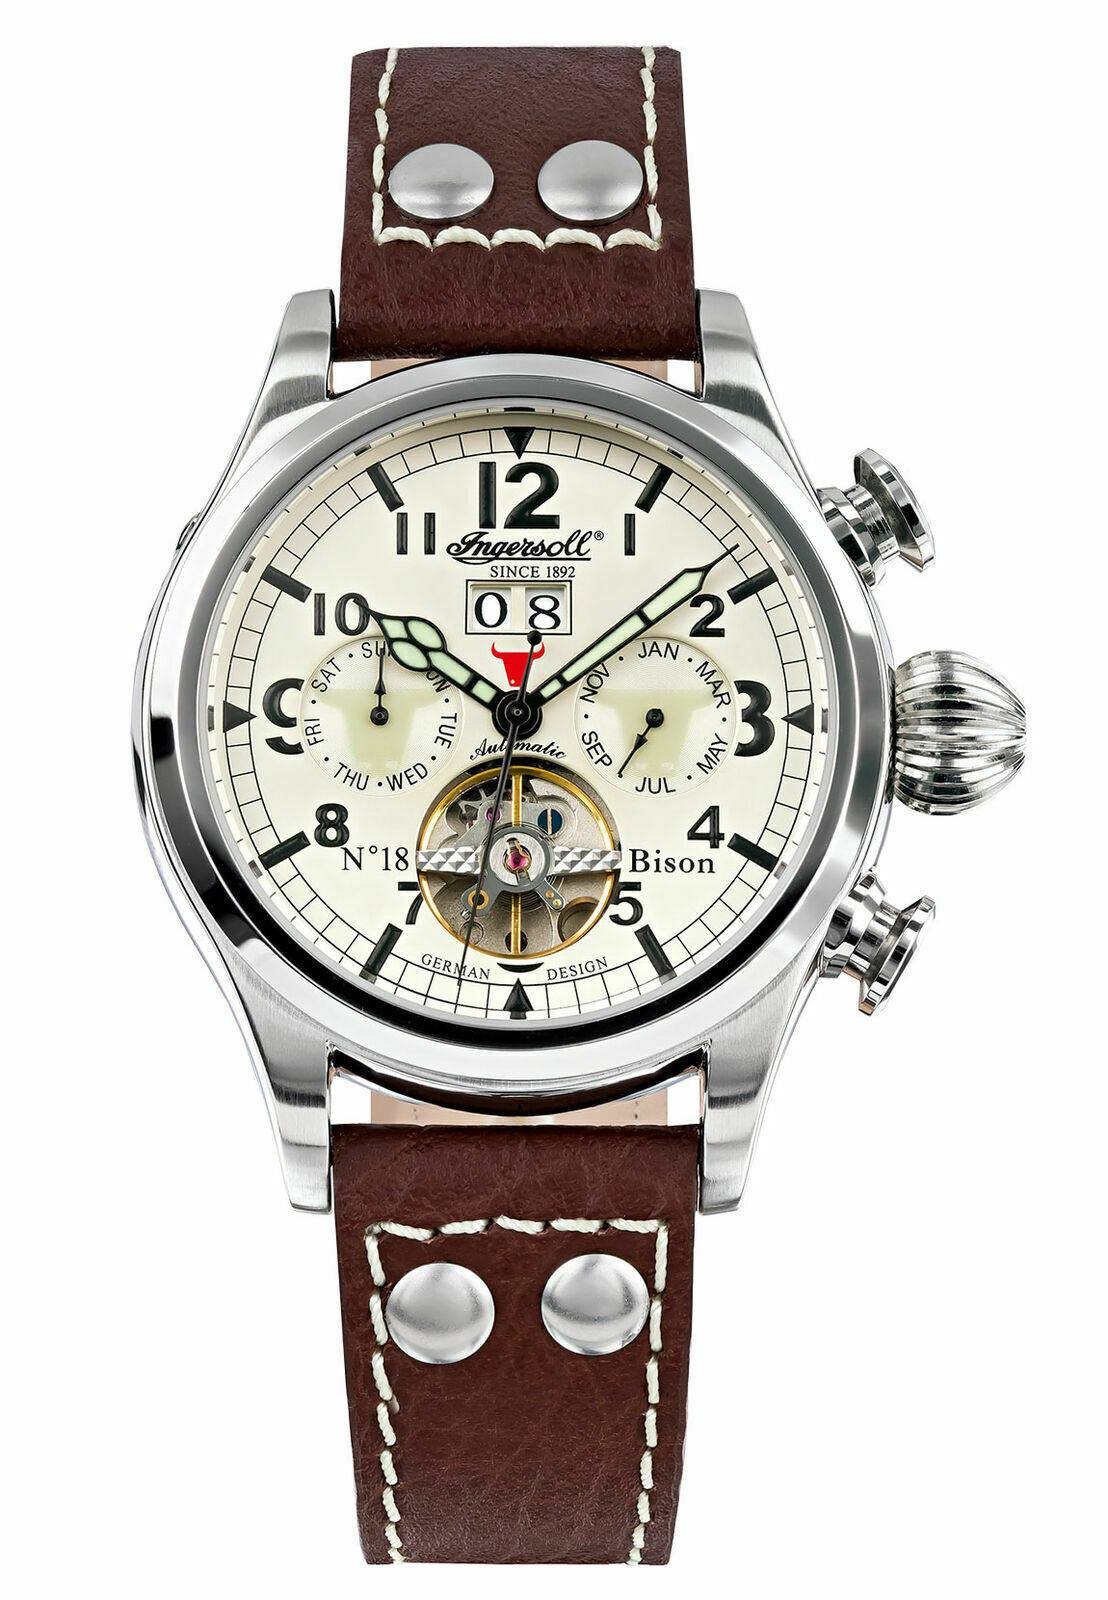 INGERSOLL WATCH BISON NO18 IN4506CH BROWN LEATHER AUTOMATIC  GENUINE 35 JEWELS